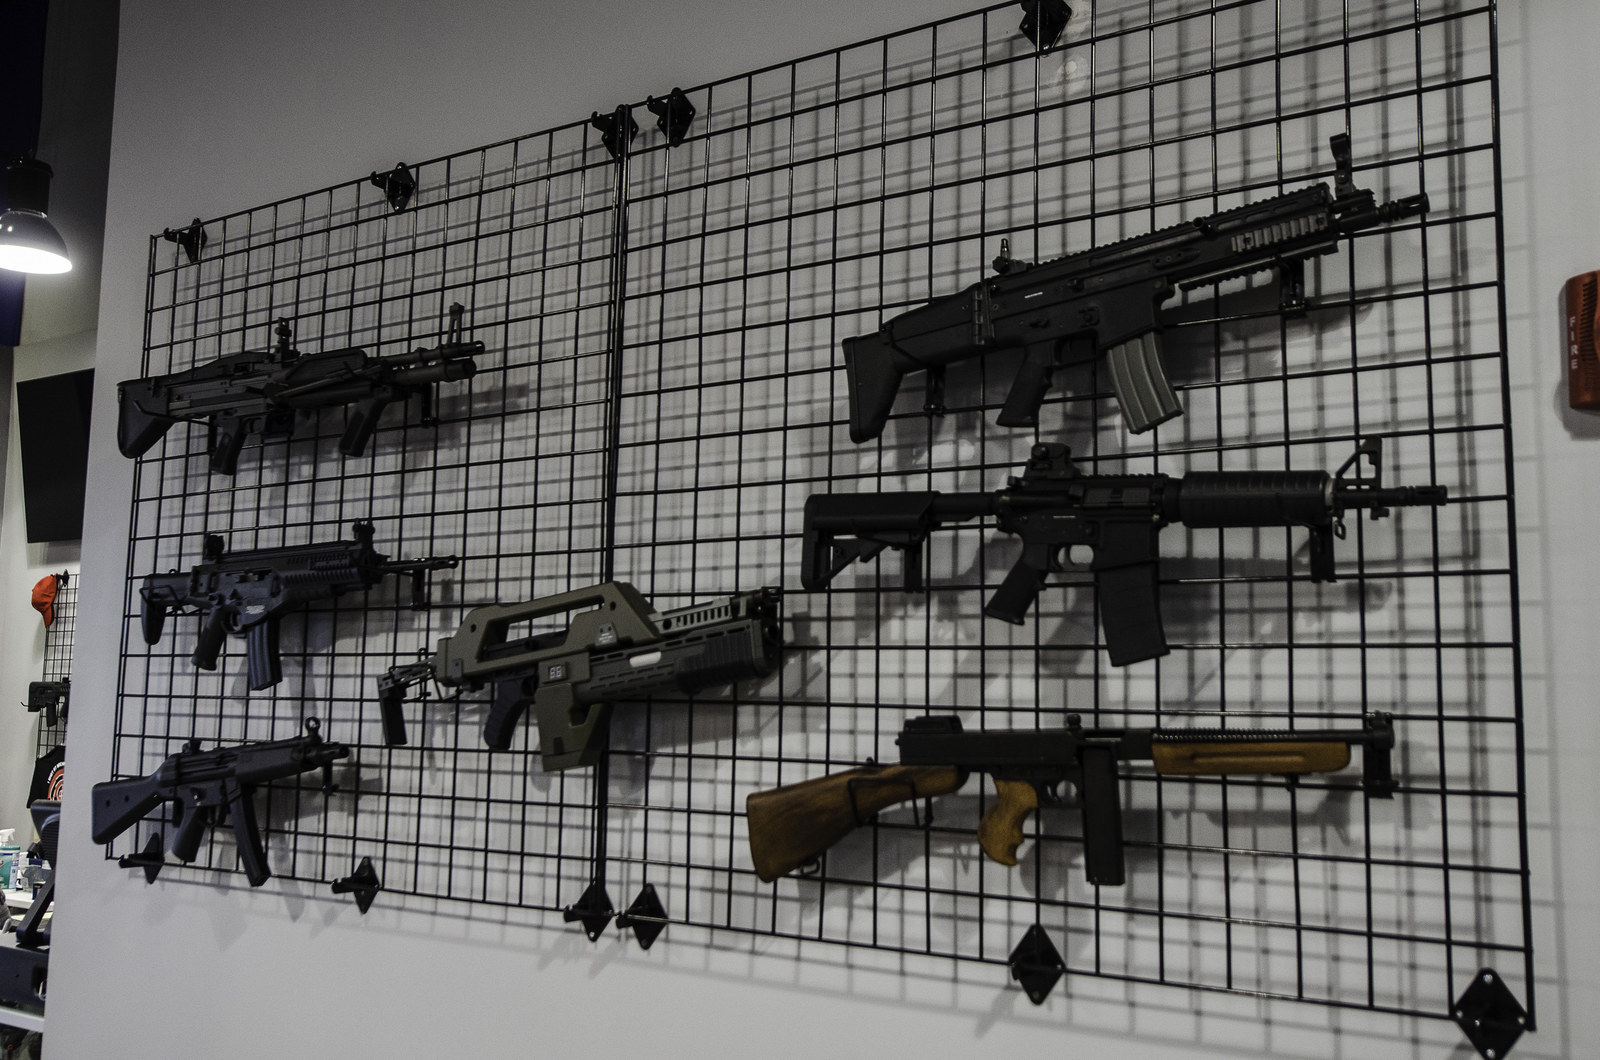 Florida S Latest Theme Park Is All About Guns